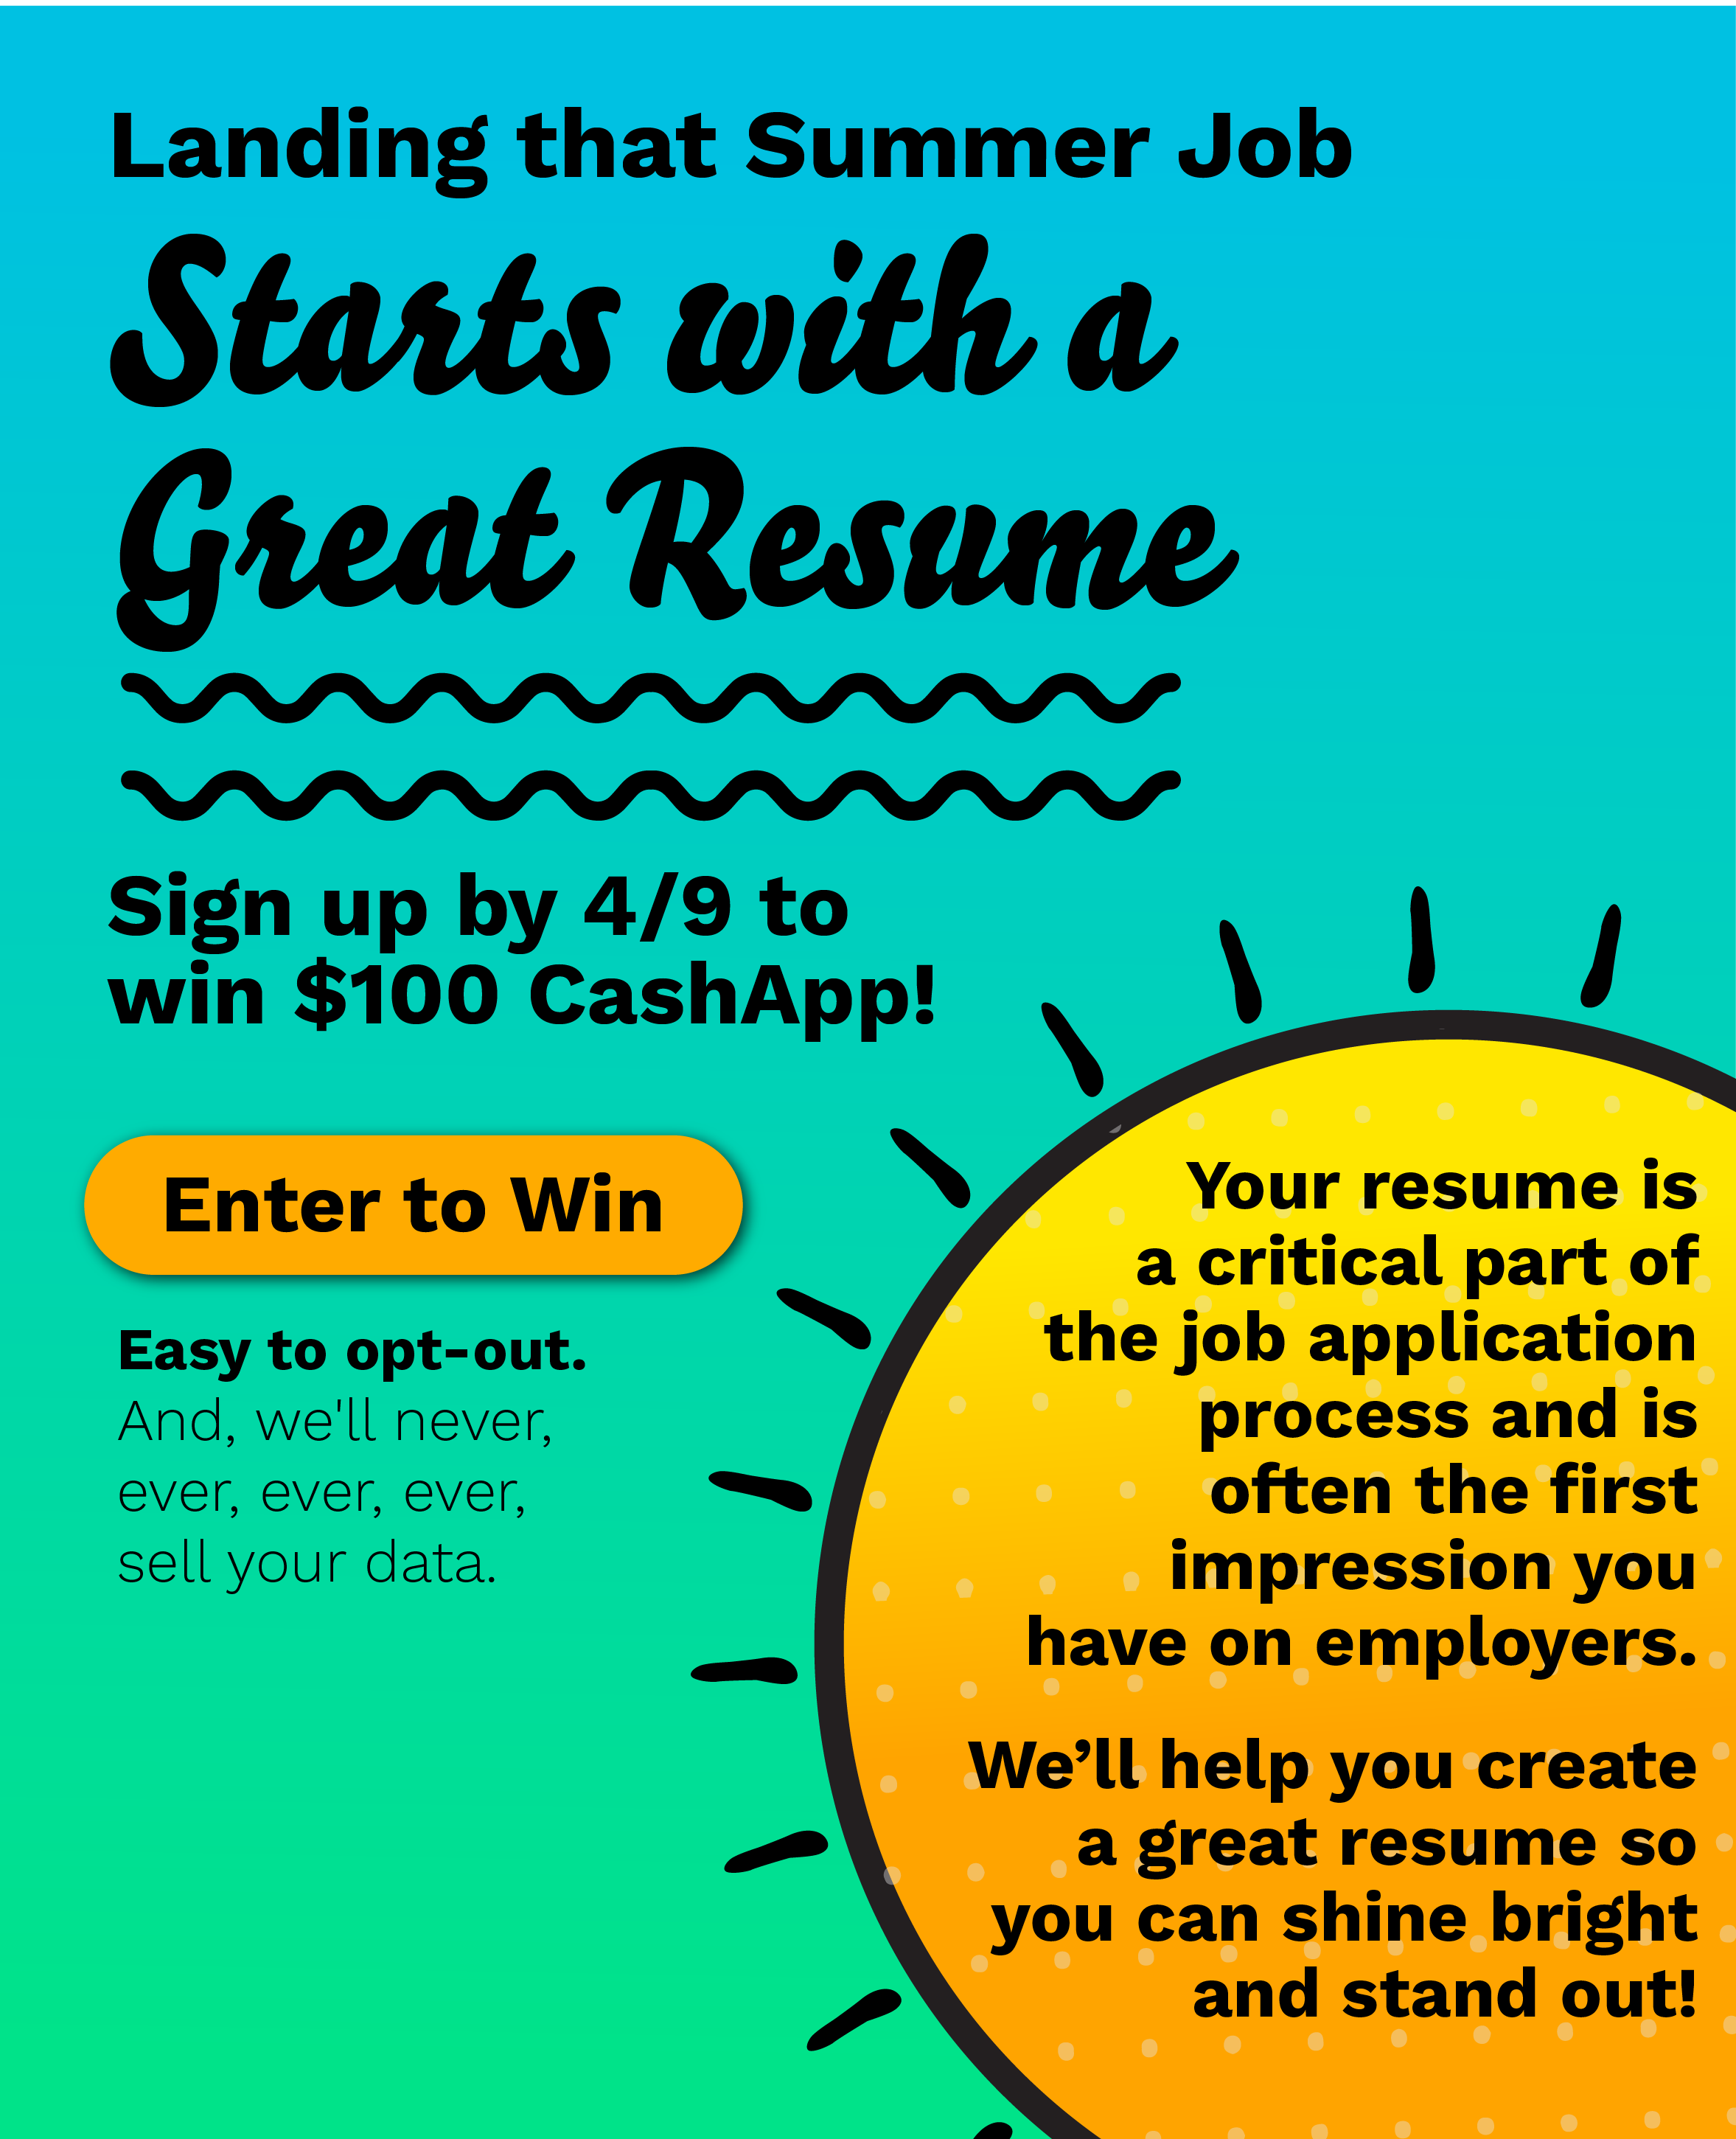 Landing a summer job starts with a great resume. Text #resume to 33-55-77 to reserve your spot with a job advisor.